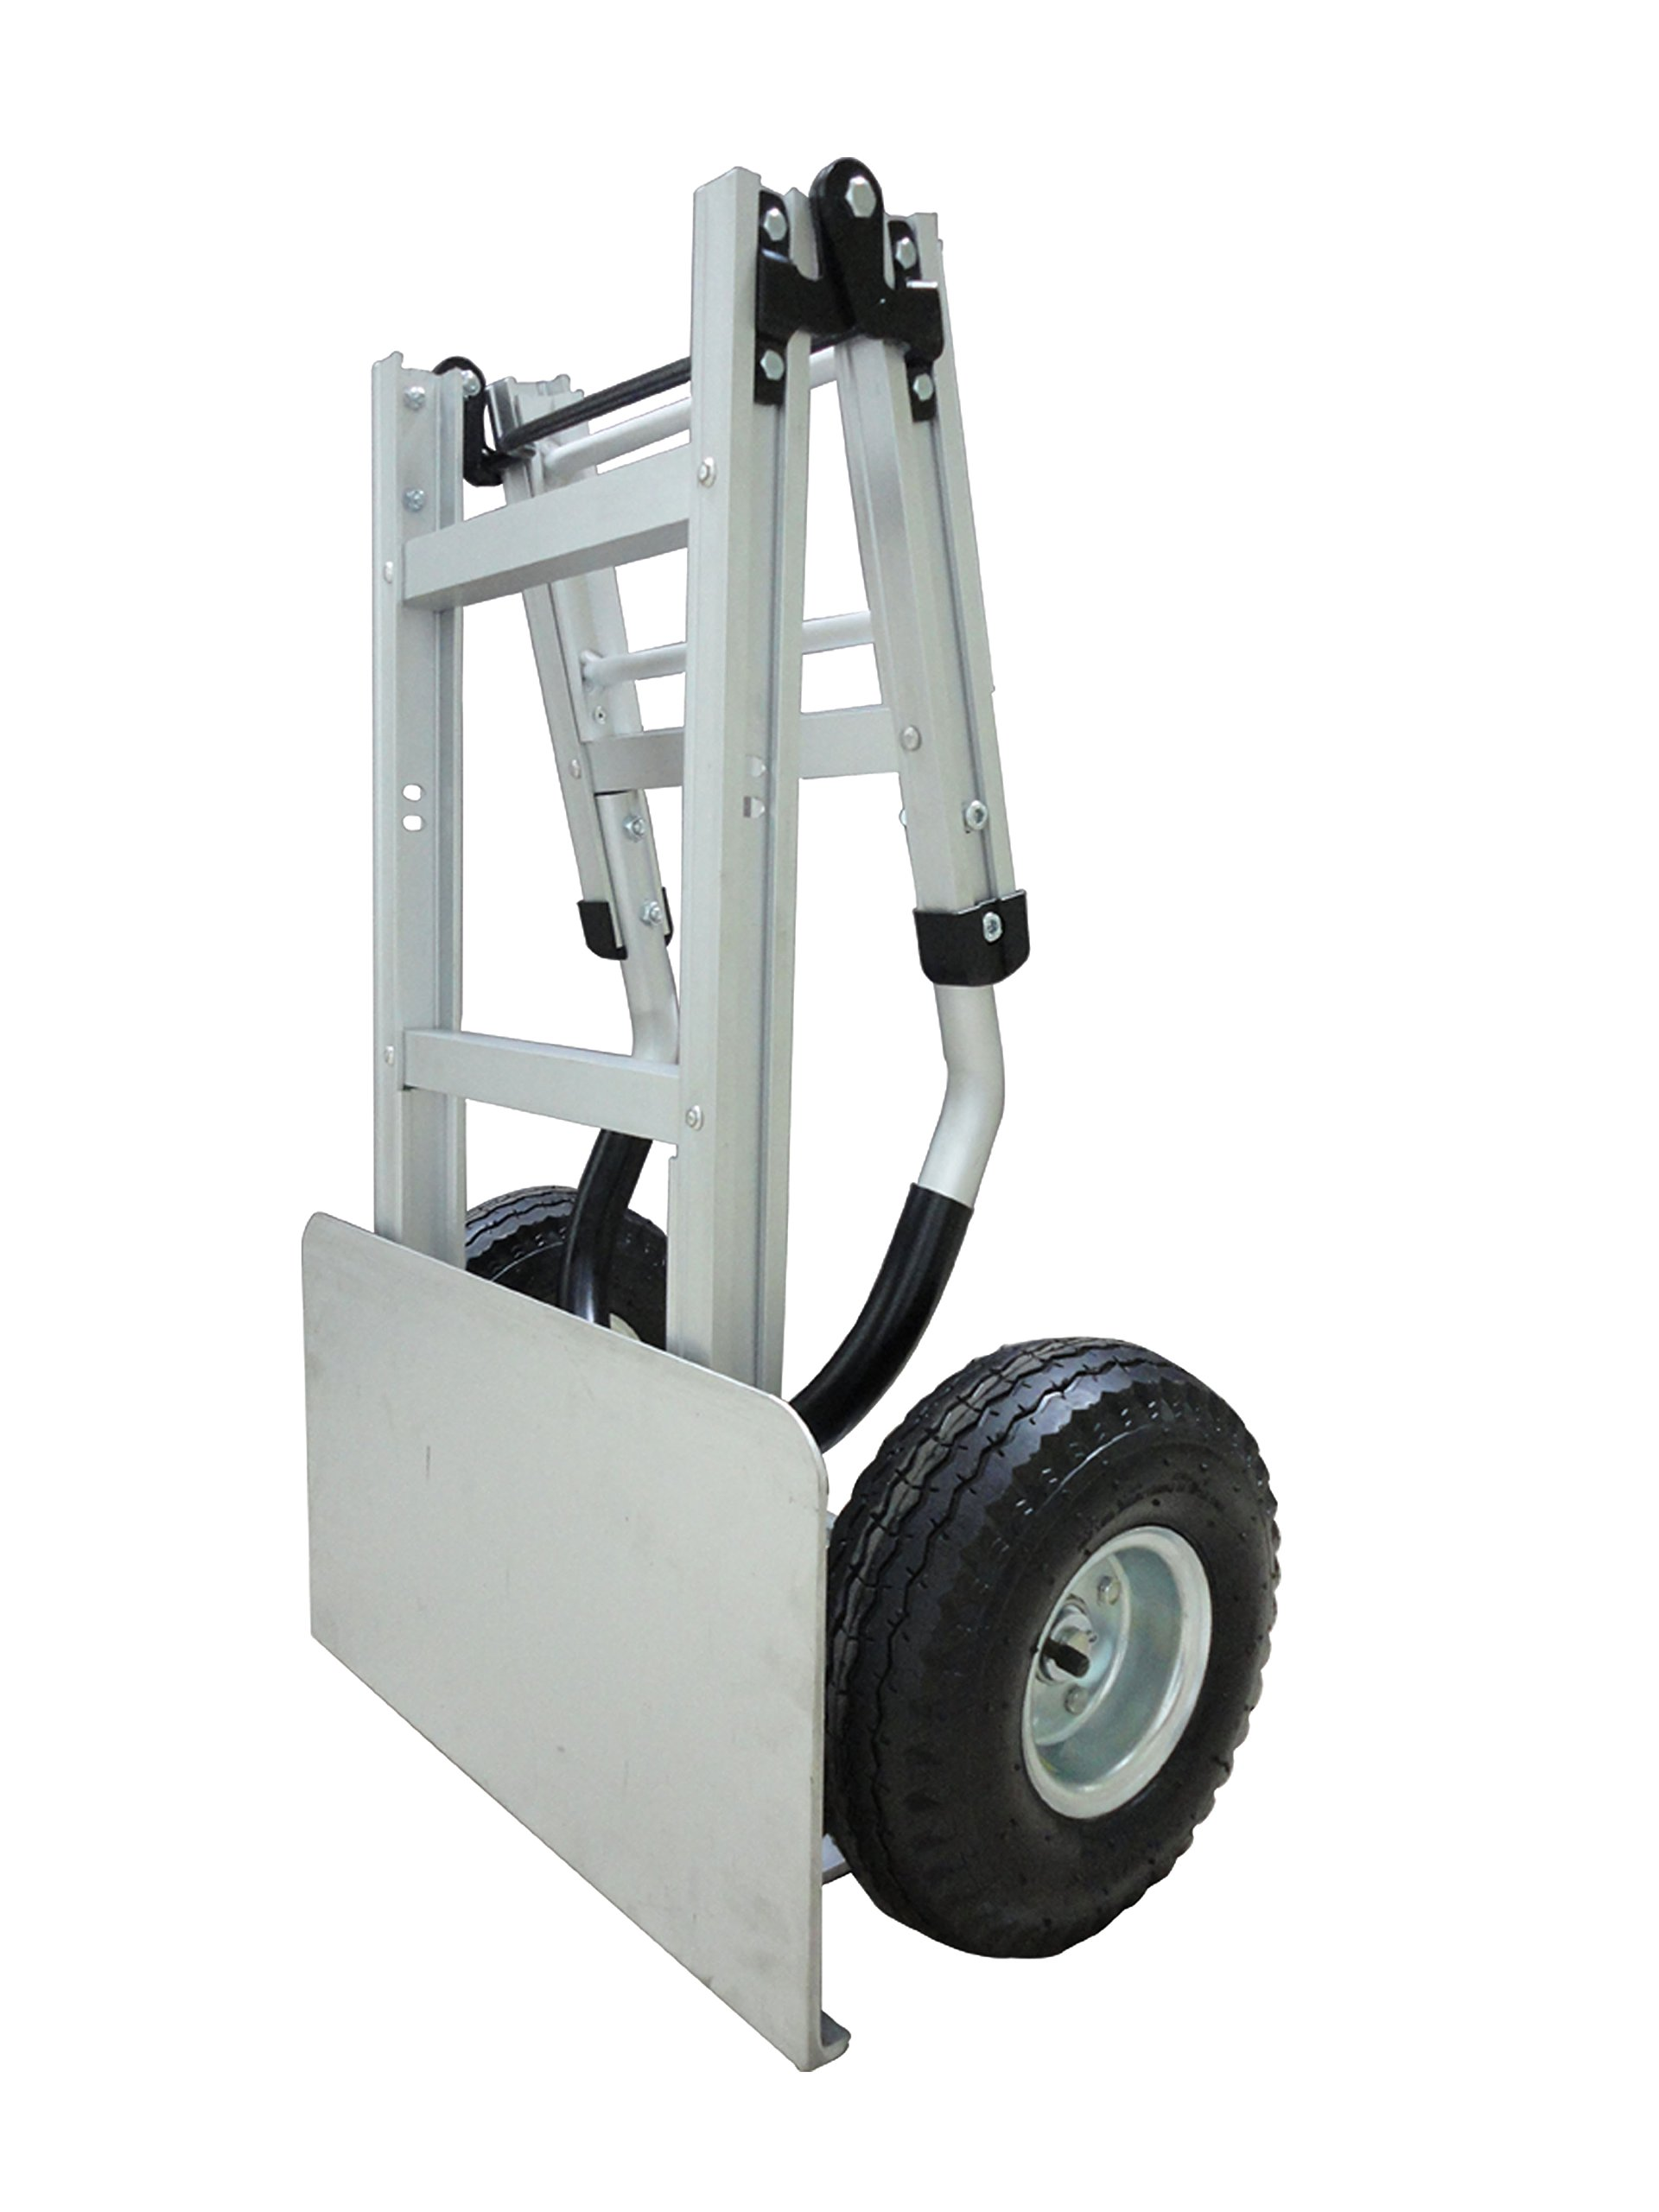 Tyke Supply llc Full Size Aluminum Folding Hand Truck / Dolly Extra Large Nose Plate with Pneumatic Tires